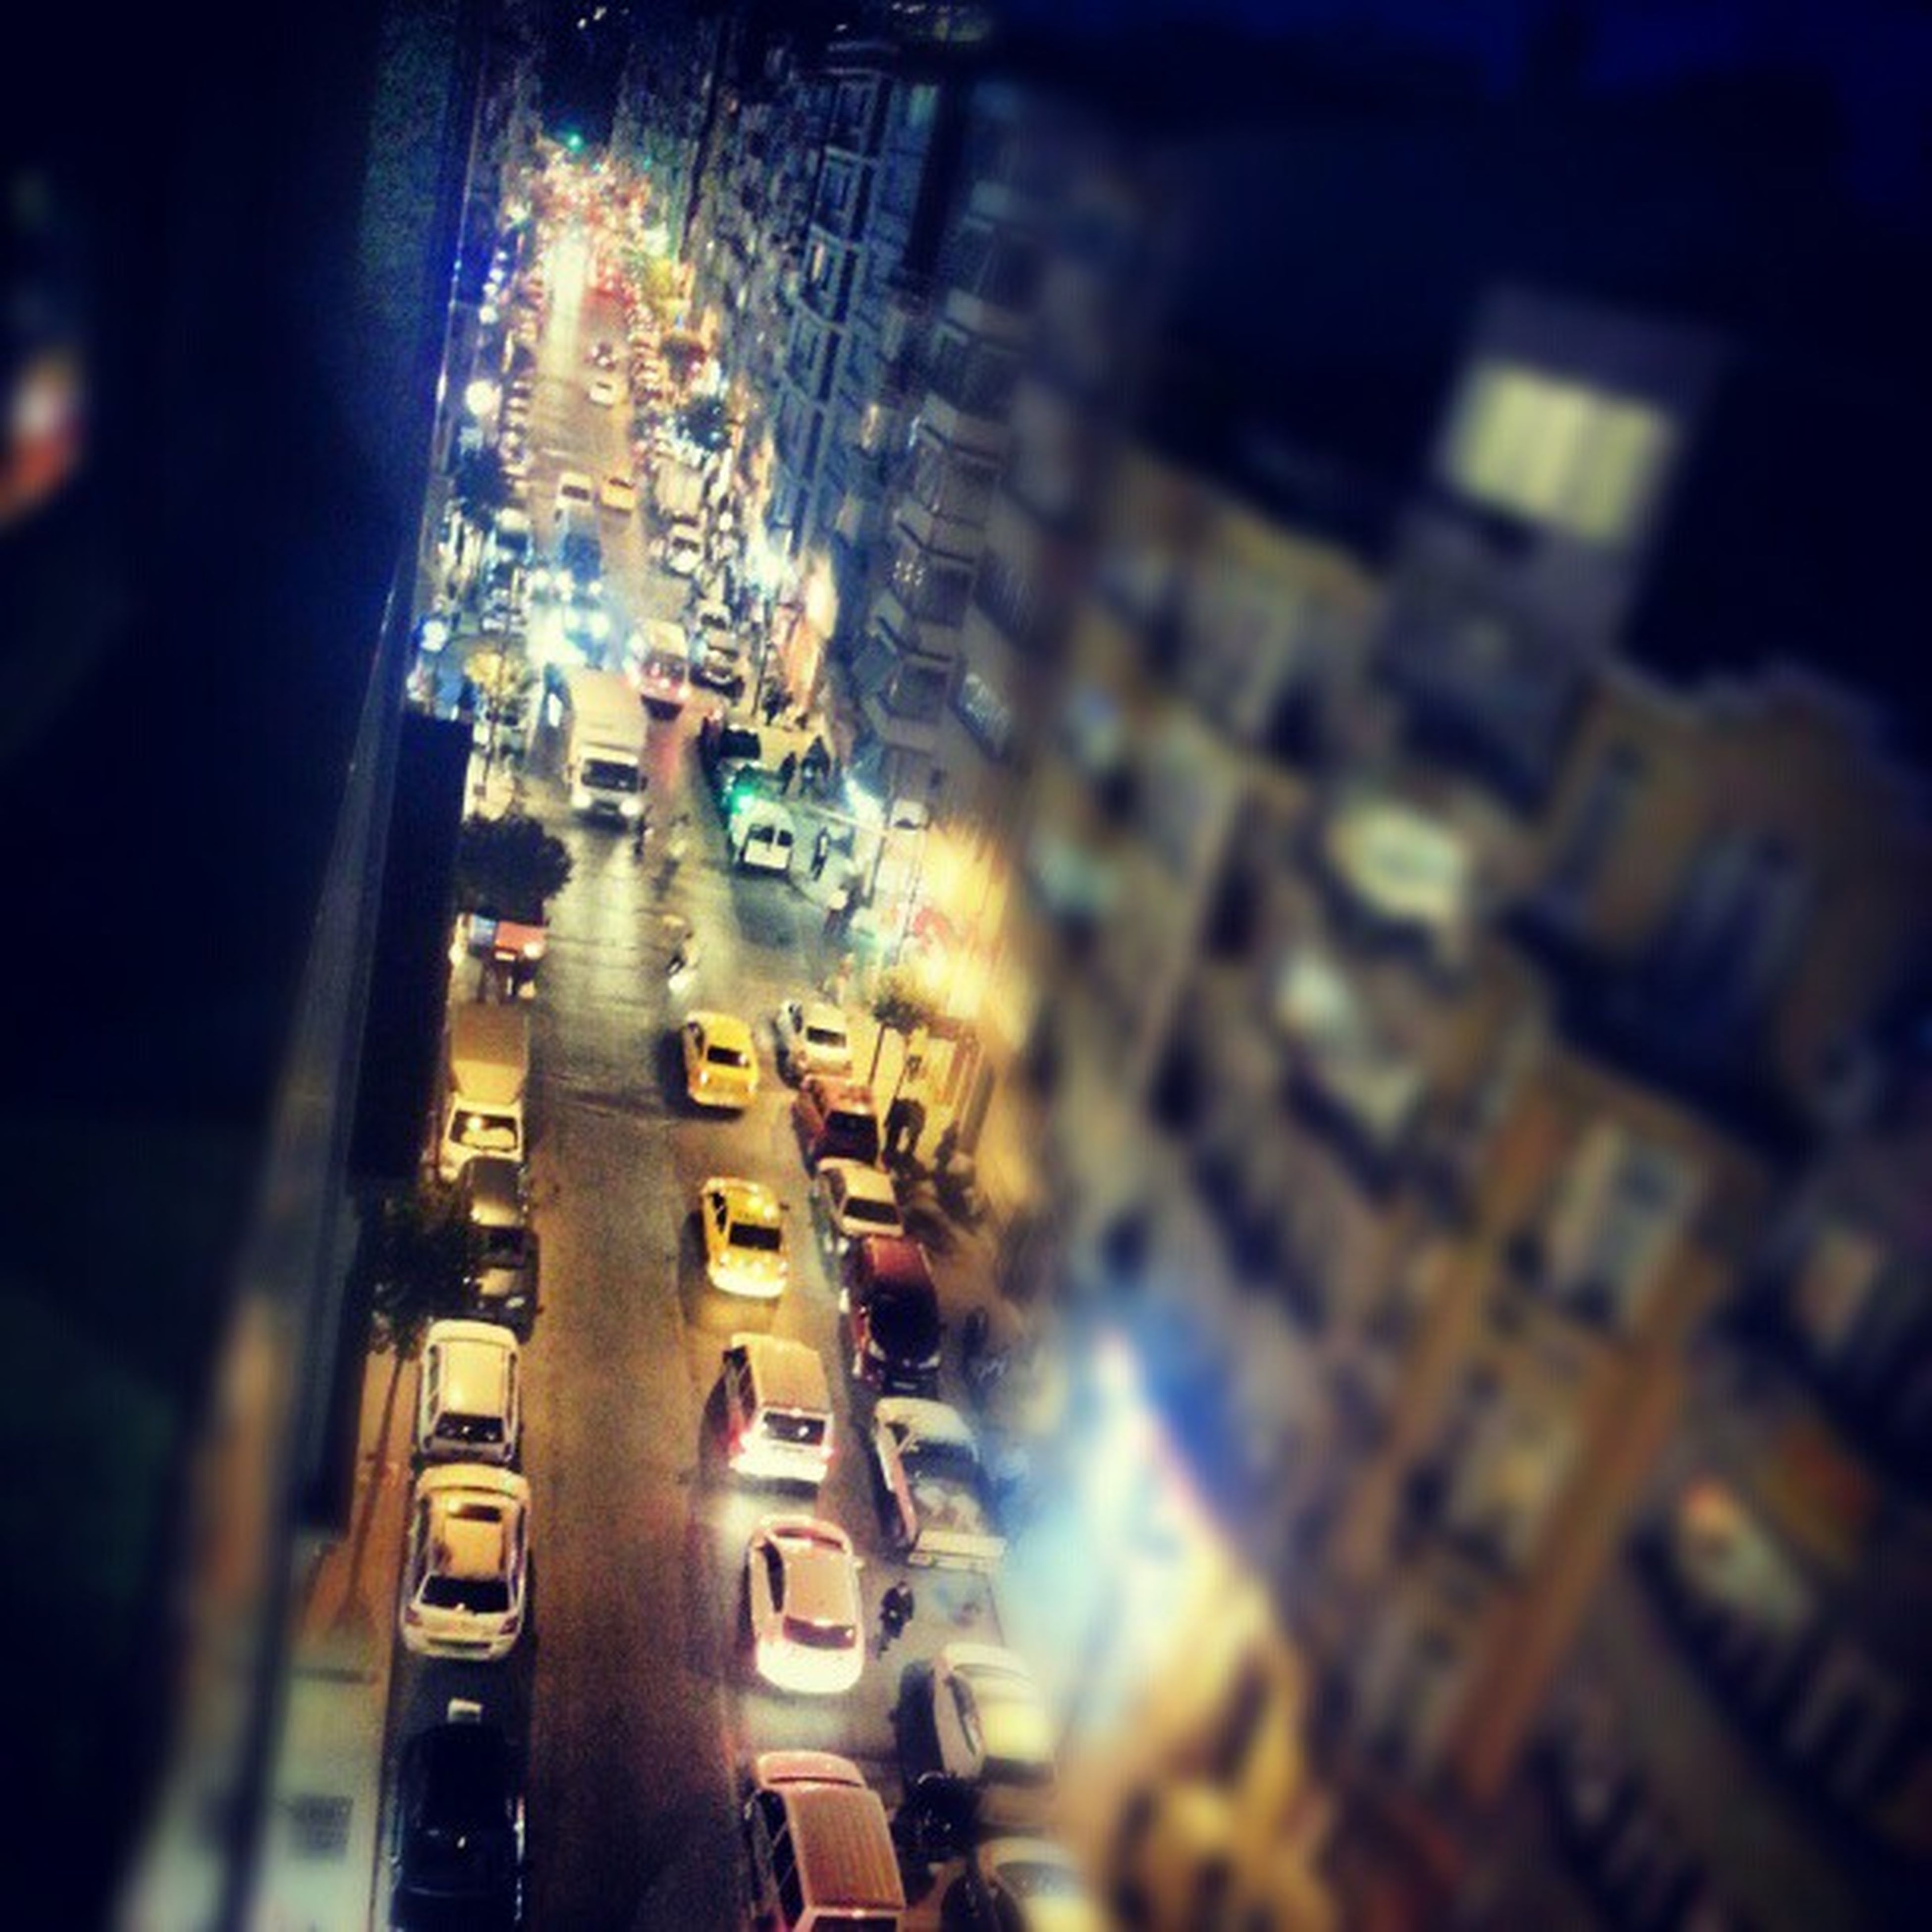 illuminated, night, city, building exterior, architecture, transportation, built structure, mode of transport, city life, high angle view, cityscape, street, city street, land vehicle, car, traffic, travel, road, lighting equipment, light - natural phenomenon